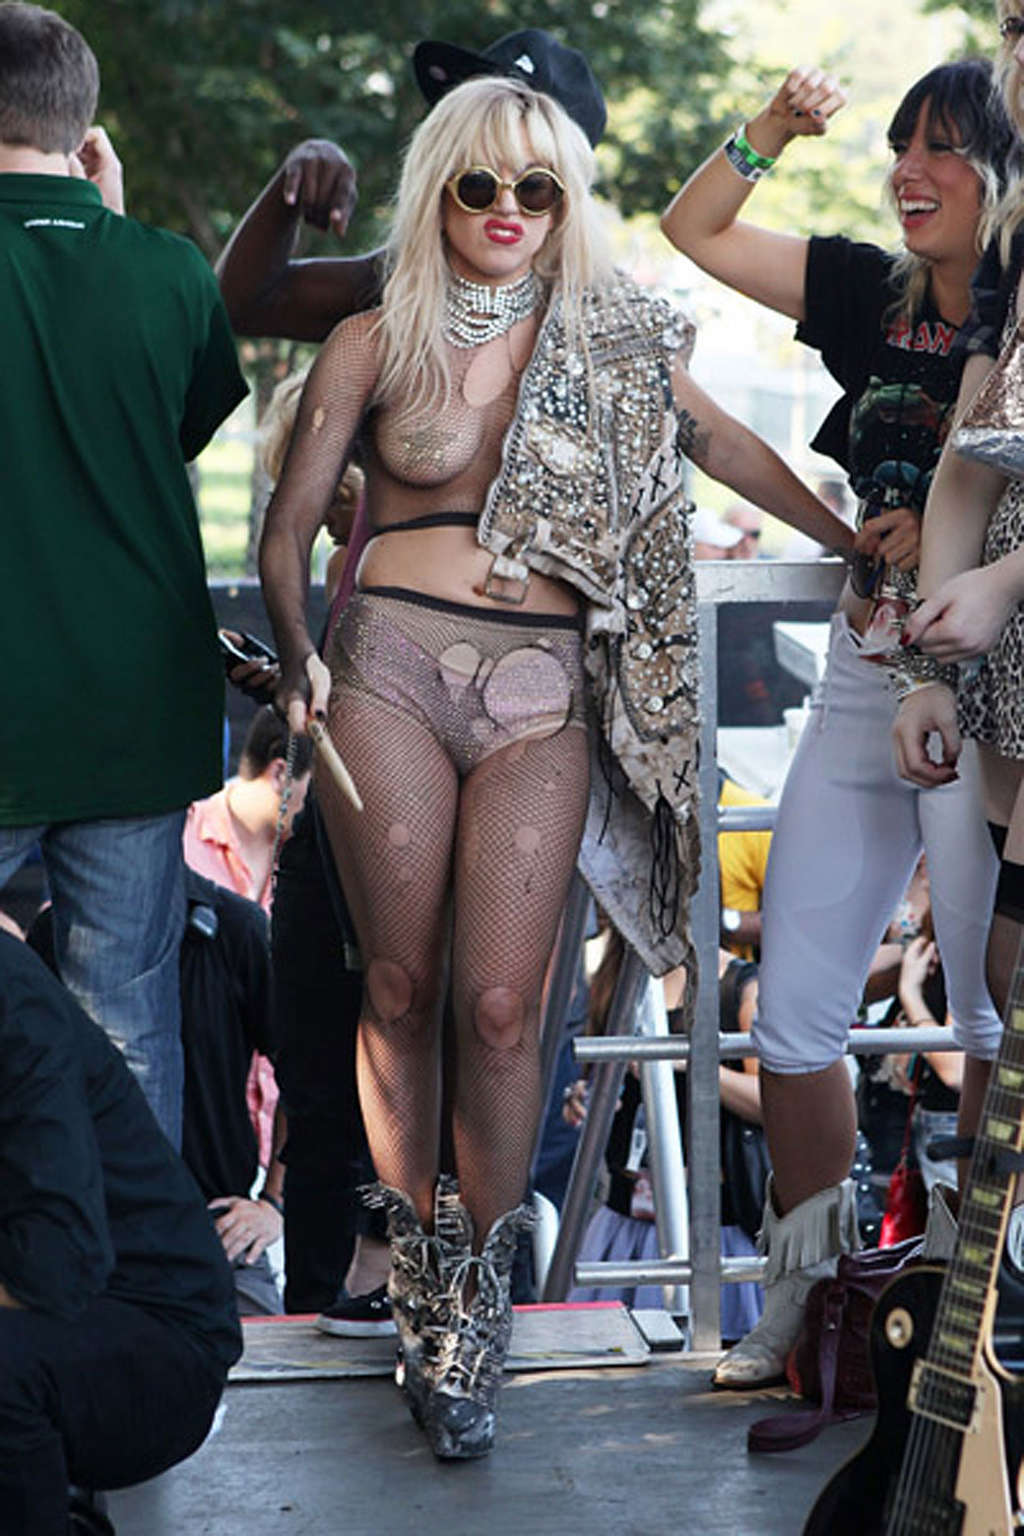 lady gaga with tape covering her nipples in see thru top on stage 1